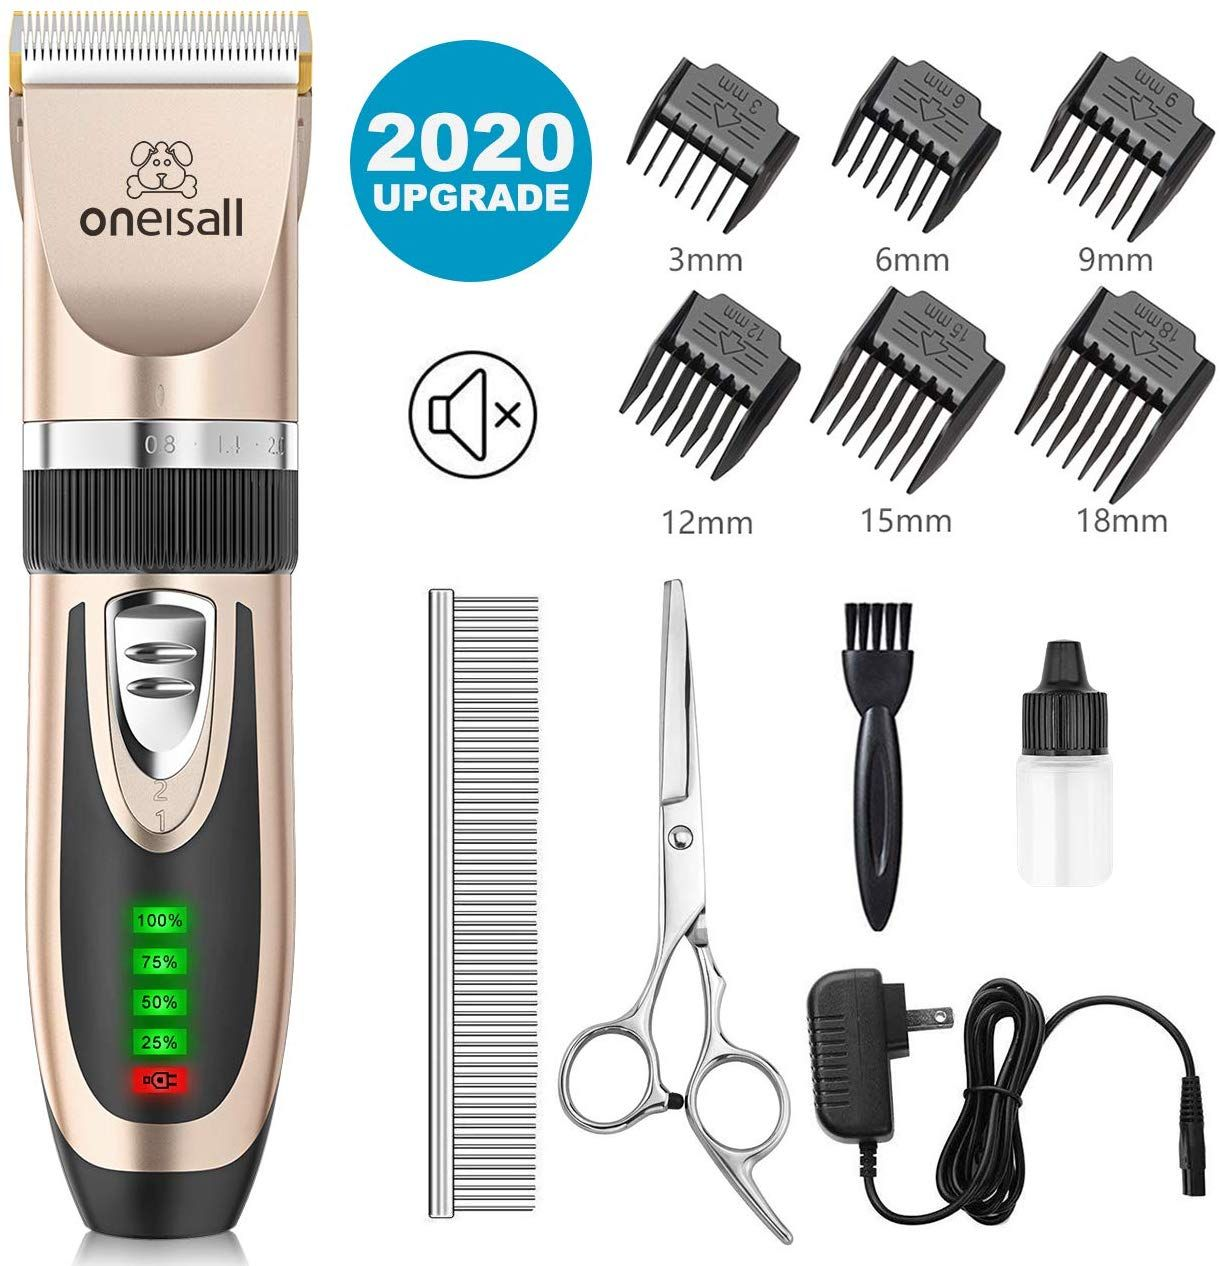 Oneisall Dog Clippers Low Noise 2 Speed Quiet Dog Grooming Kit Rechargeable Cordless Pet Hair Clipper Trimmer Shaver Fo In 2020 Grooming Kit Dog Grooming Dog Clippers